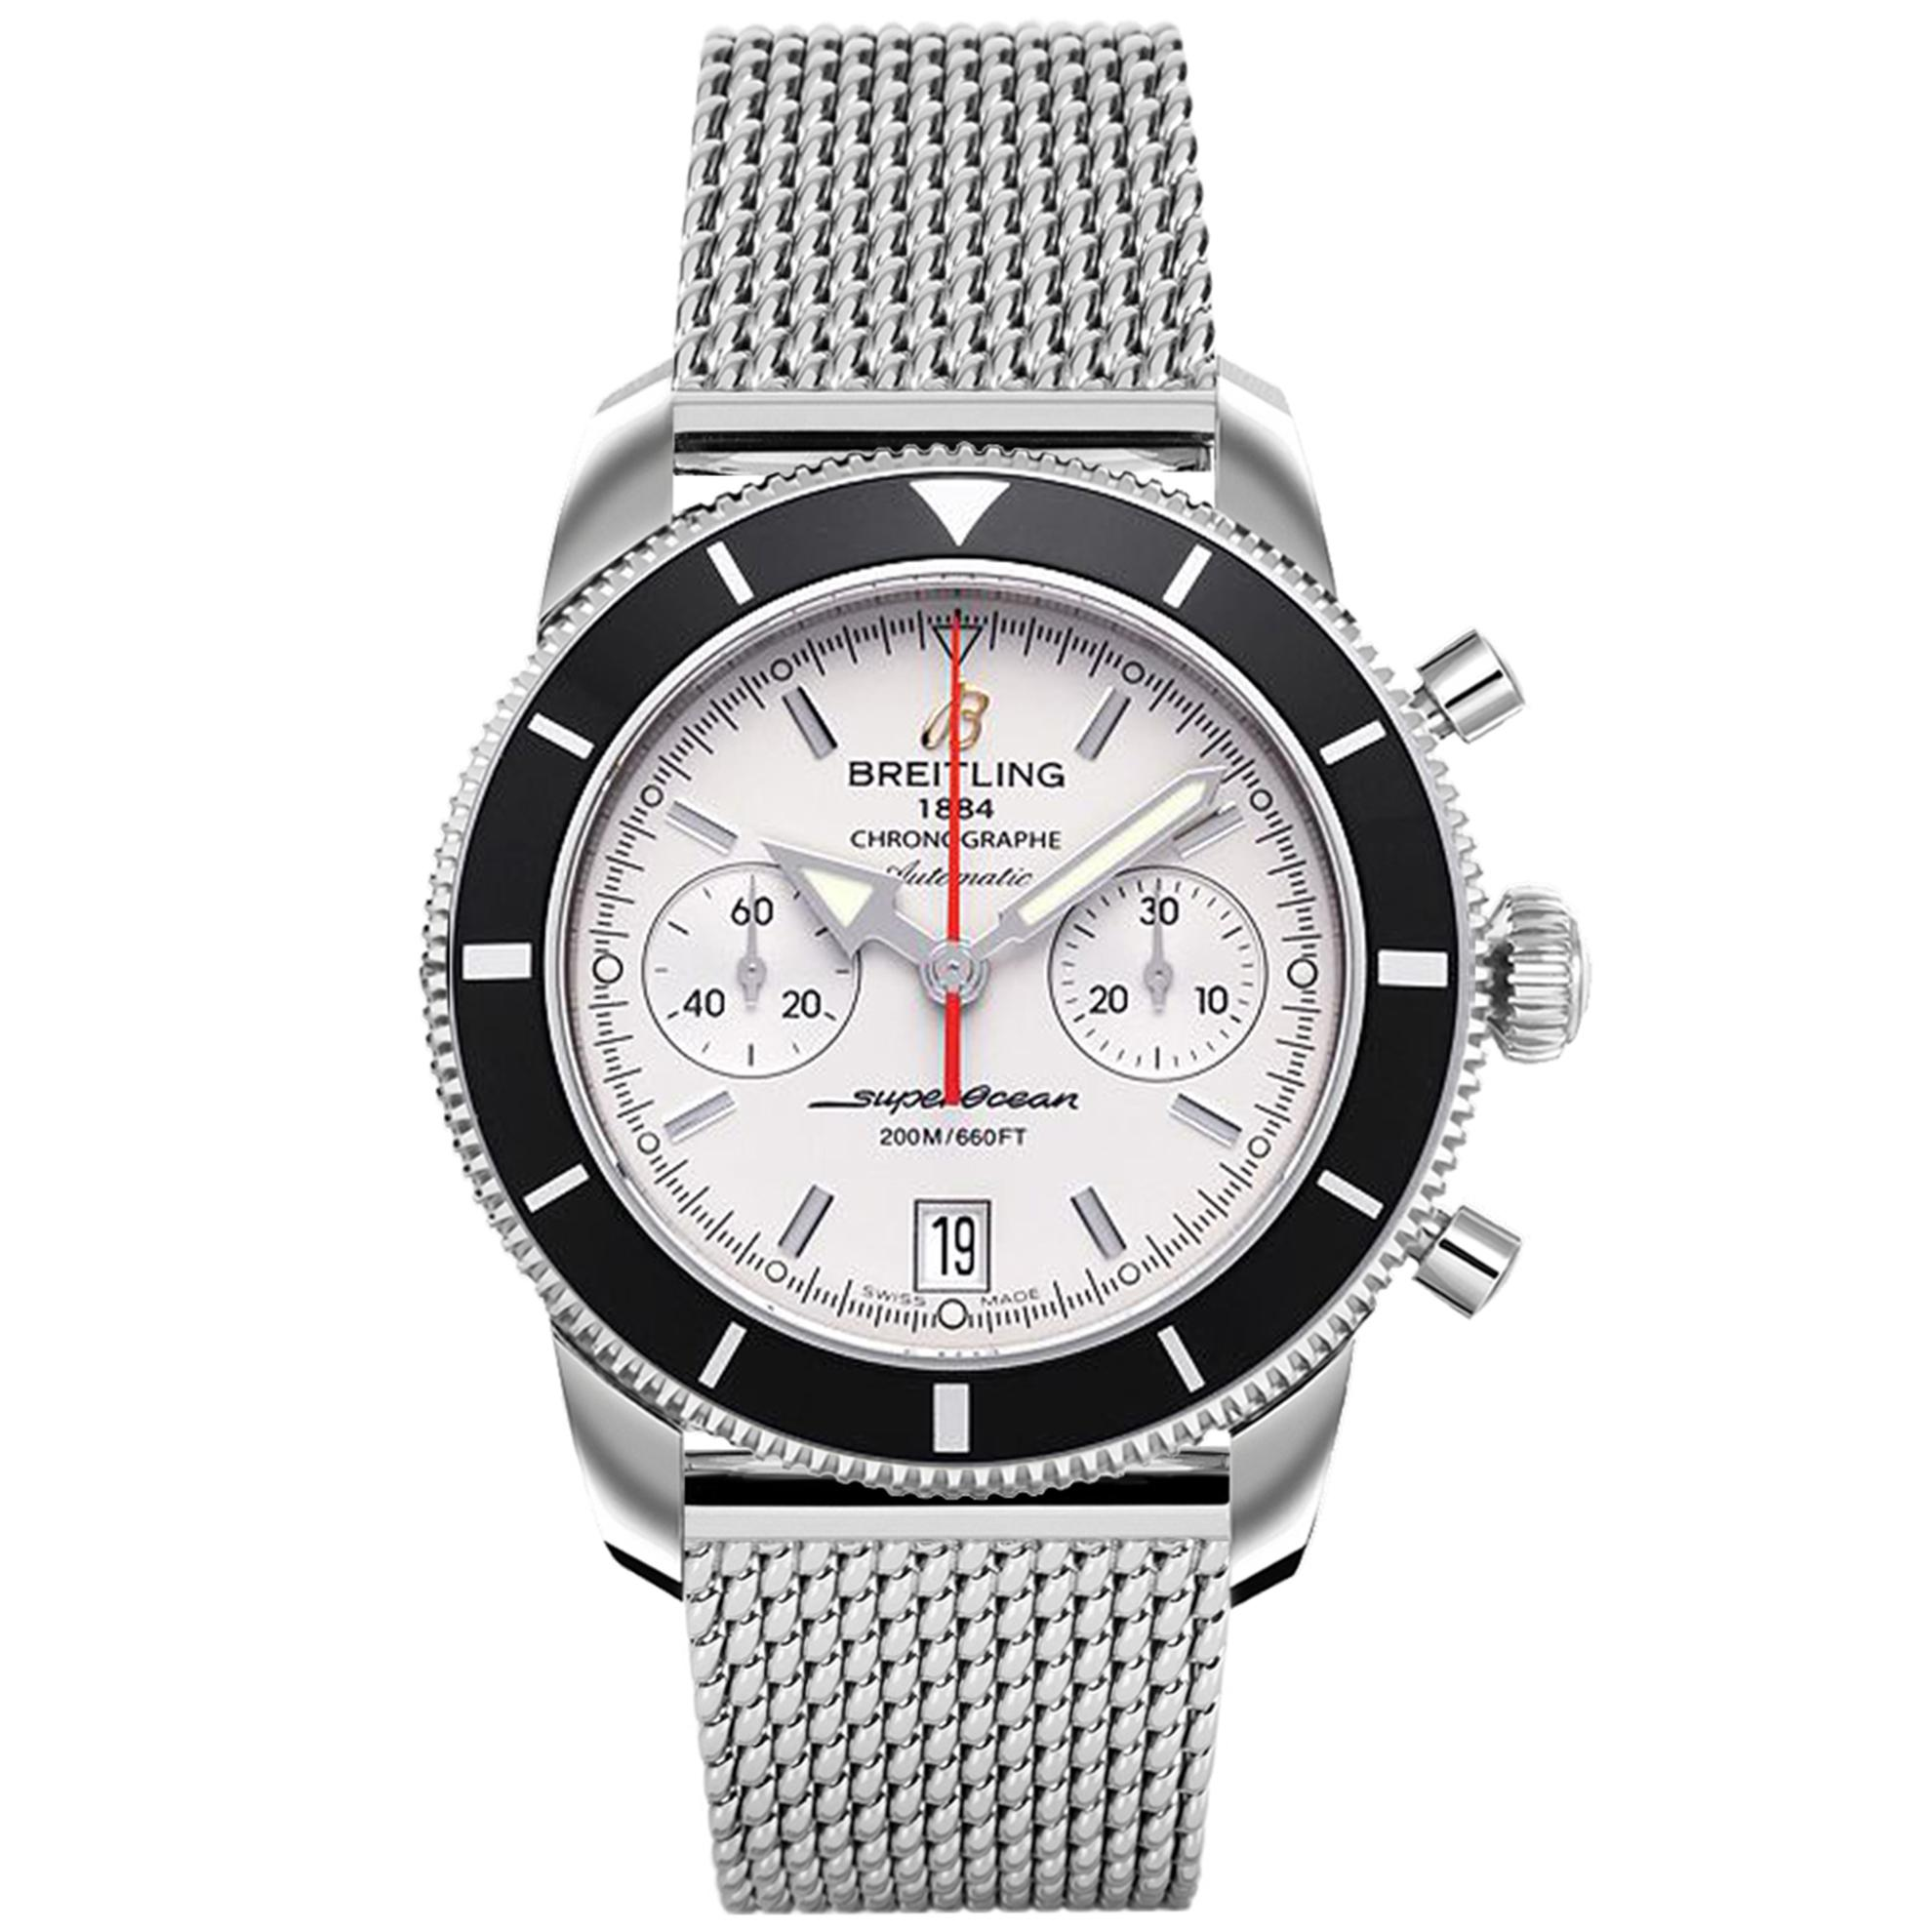 Breitling A2337024.G753S Breitling Superocean Heritage Chronograph 44 Automatic Silver Dial Mesh Band